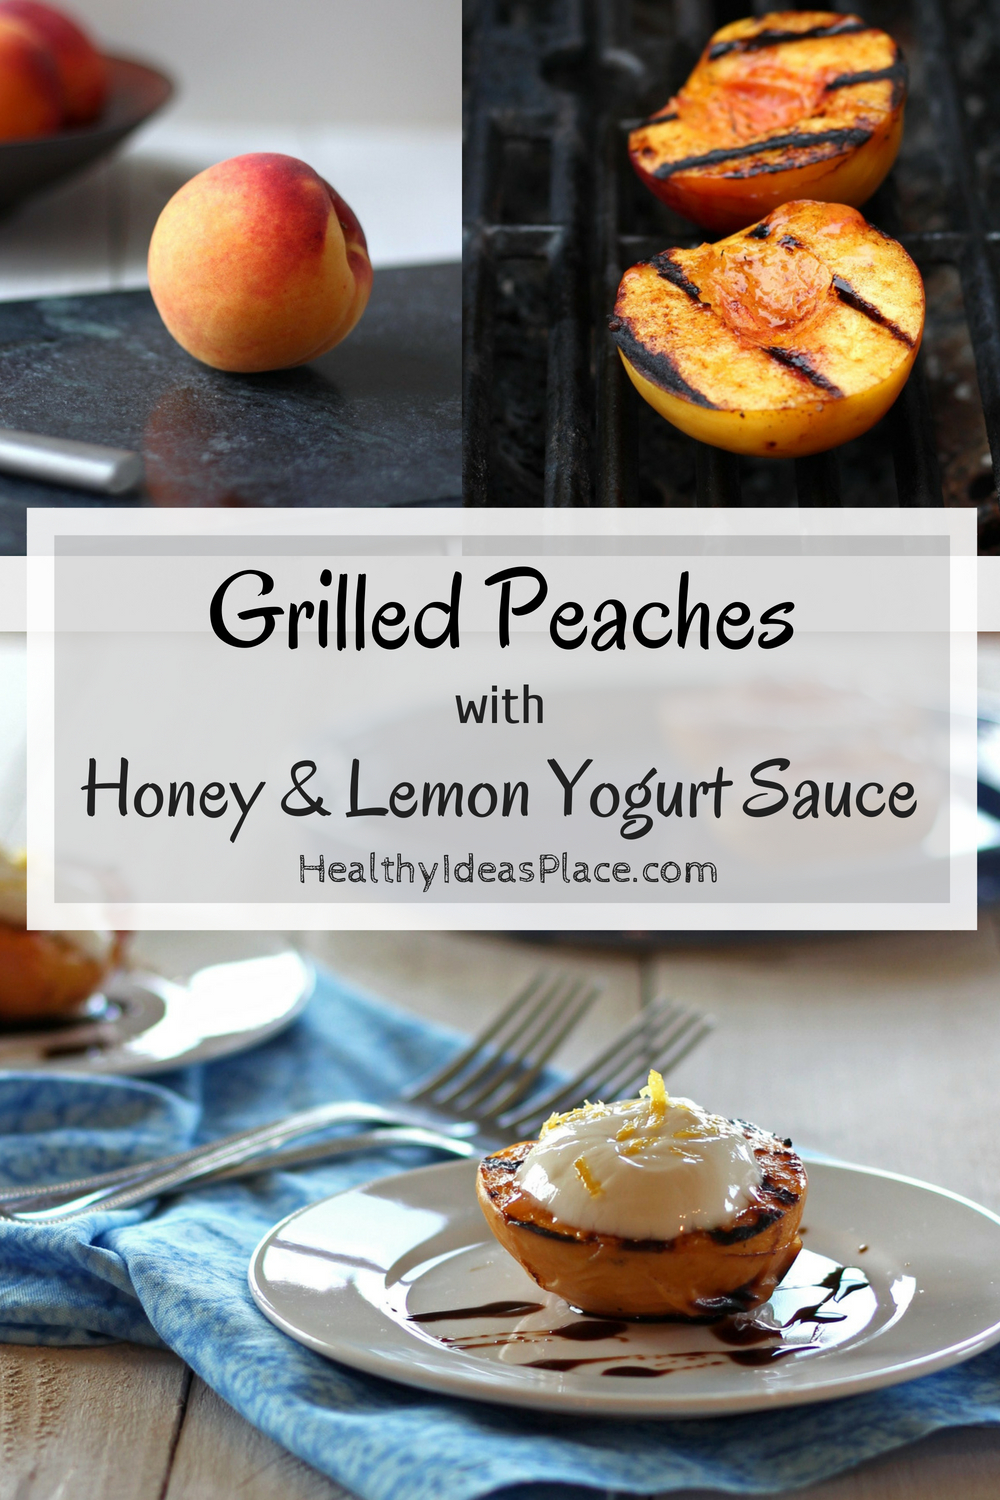 Grilled Peaches with Honey and Lemon Yogurt Sauce - Get your grill on for some grilled fruit with this super easy recipe for grilled peaches. Served with a honey and lemon yogurt sauce, it's decadent, healthy dessert option.